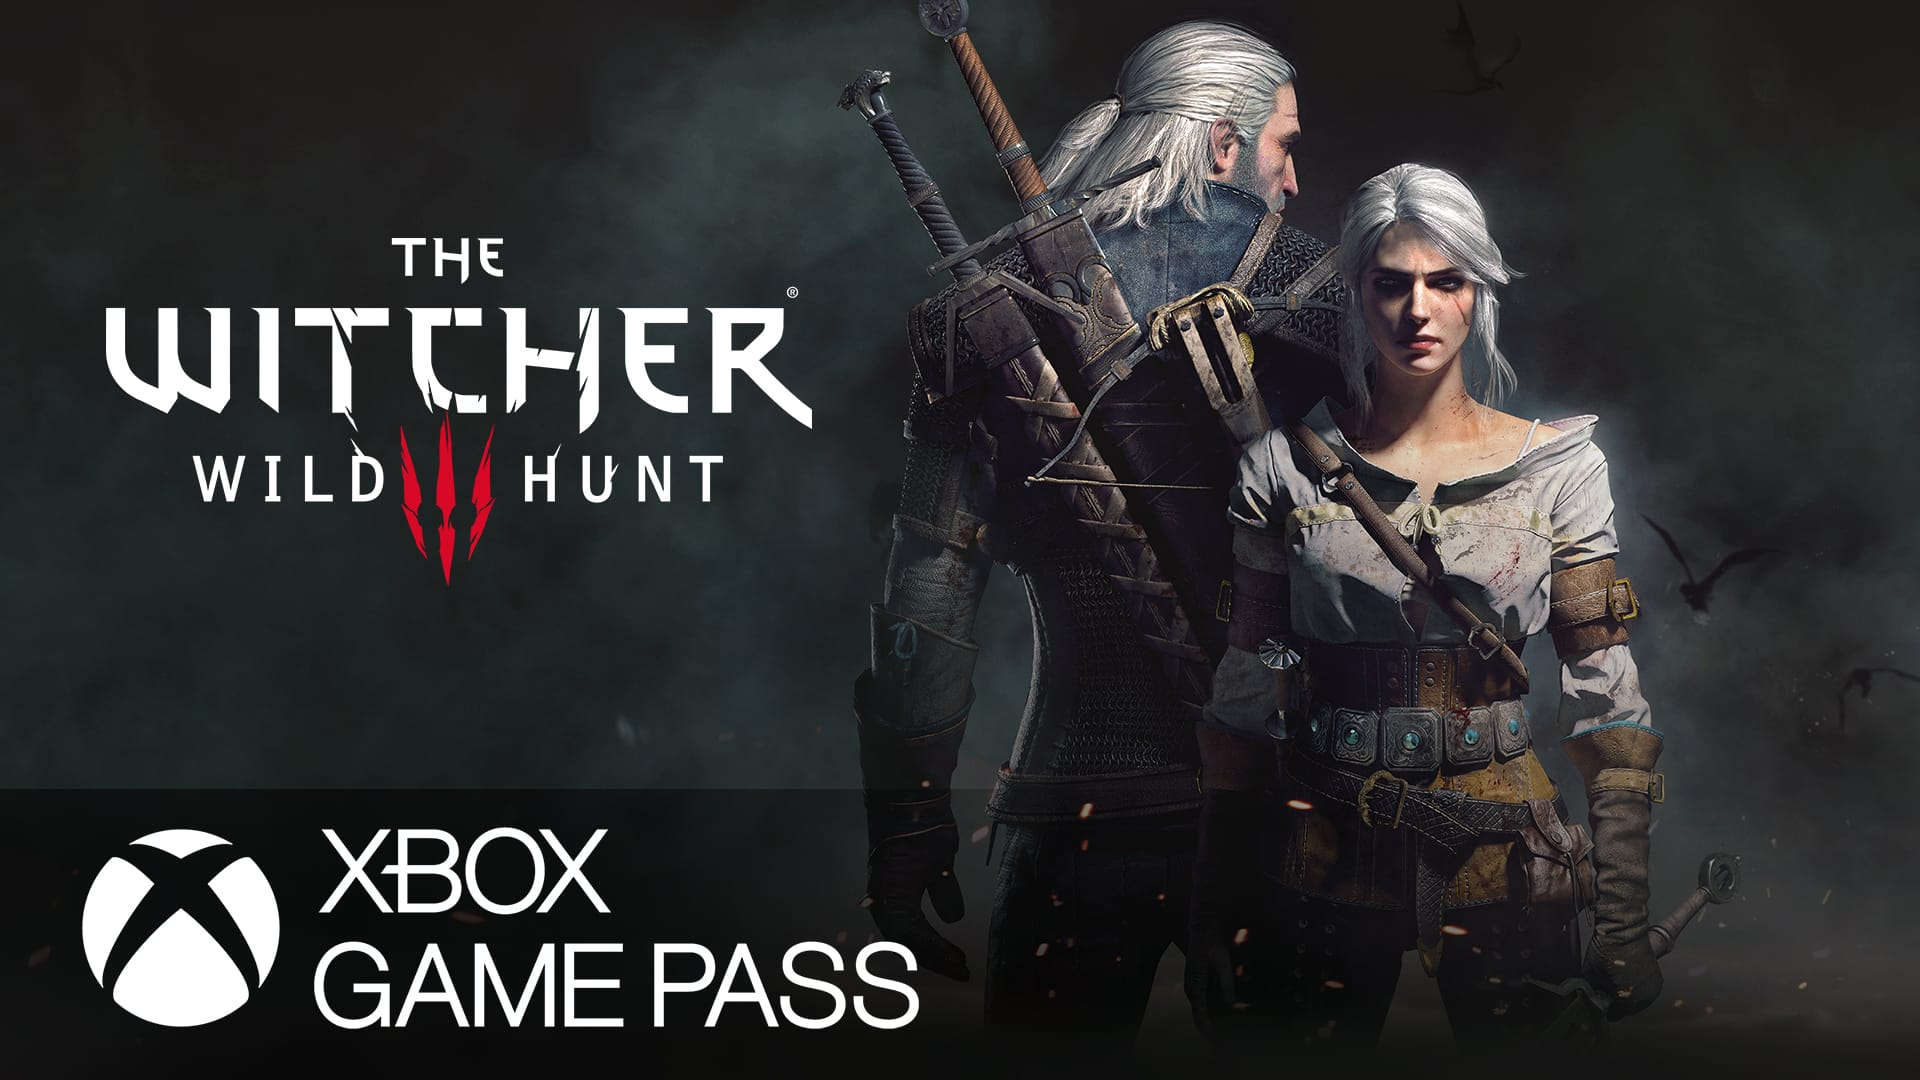 PSA: The Witcher 3: Wild Hunt is coming to XBOX Game Pass in December